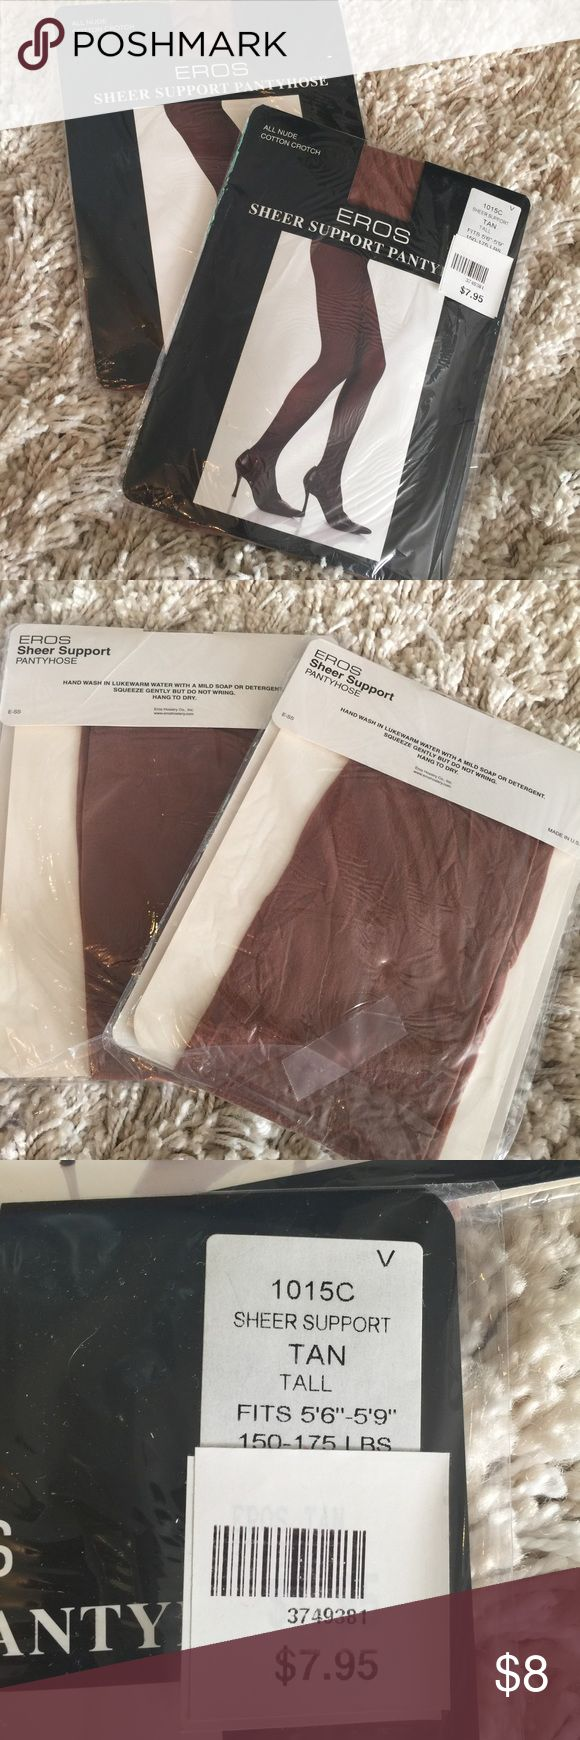 Tan Pantyhose Nylons NWT Listing is for both pairs! Bought for my wedding but ended up not needing them. 👭😁 Please see picture for sizing information Intimates & Sleepwear Shapewear